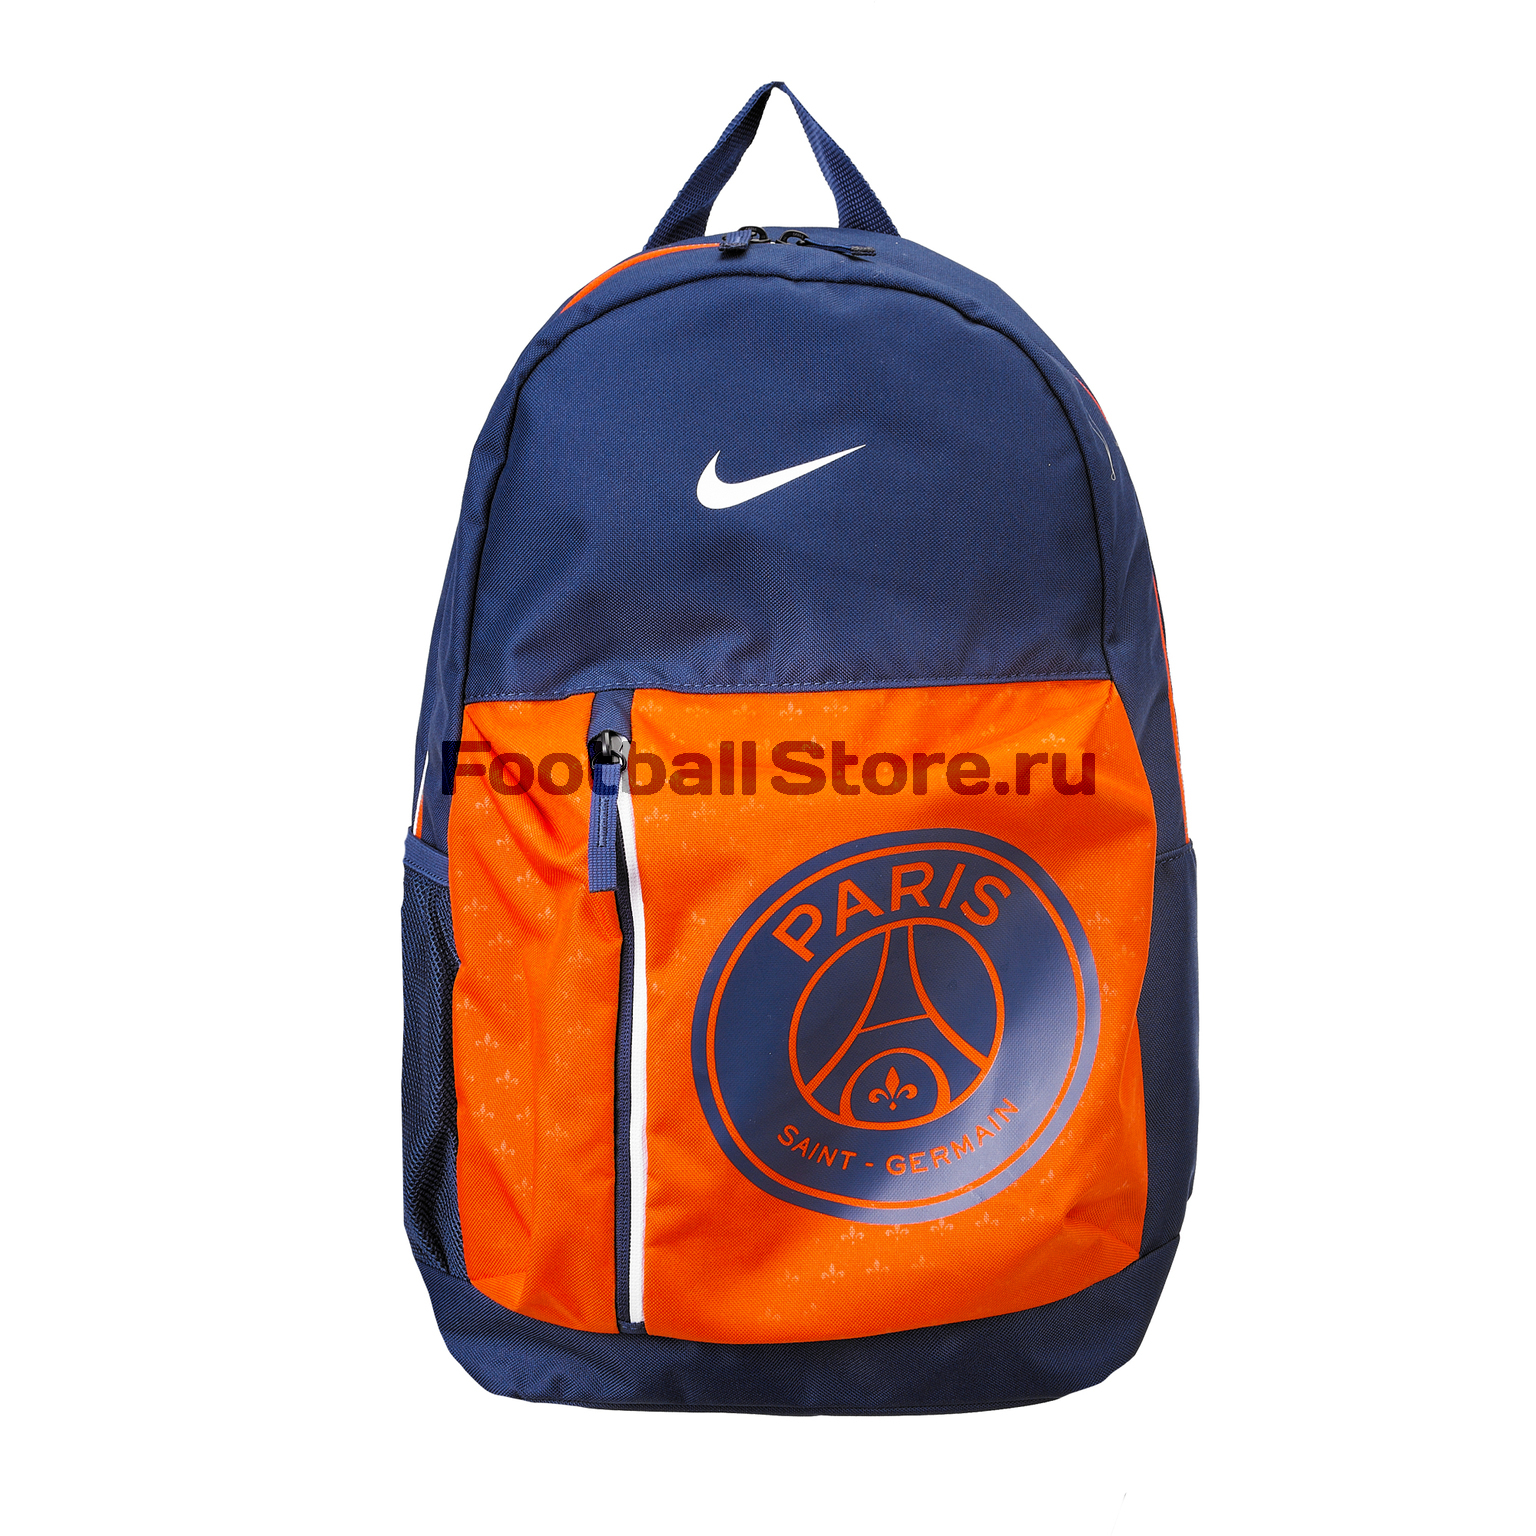 57bb52ab0ccb Рюкзак Nike Stadium PSG Backpack BA5526-421 – купить в интернет ...